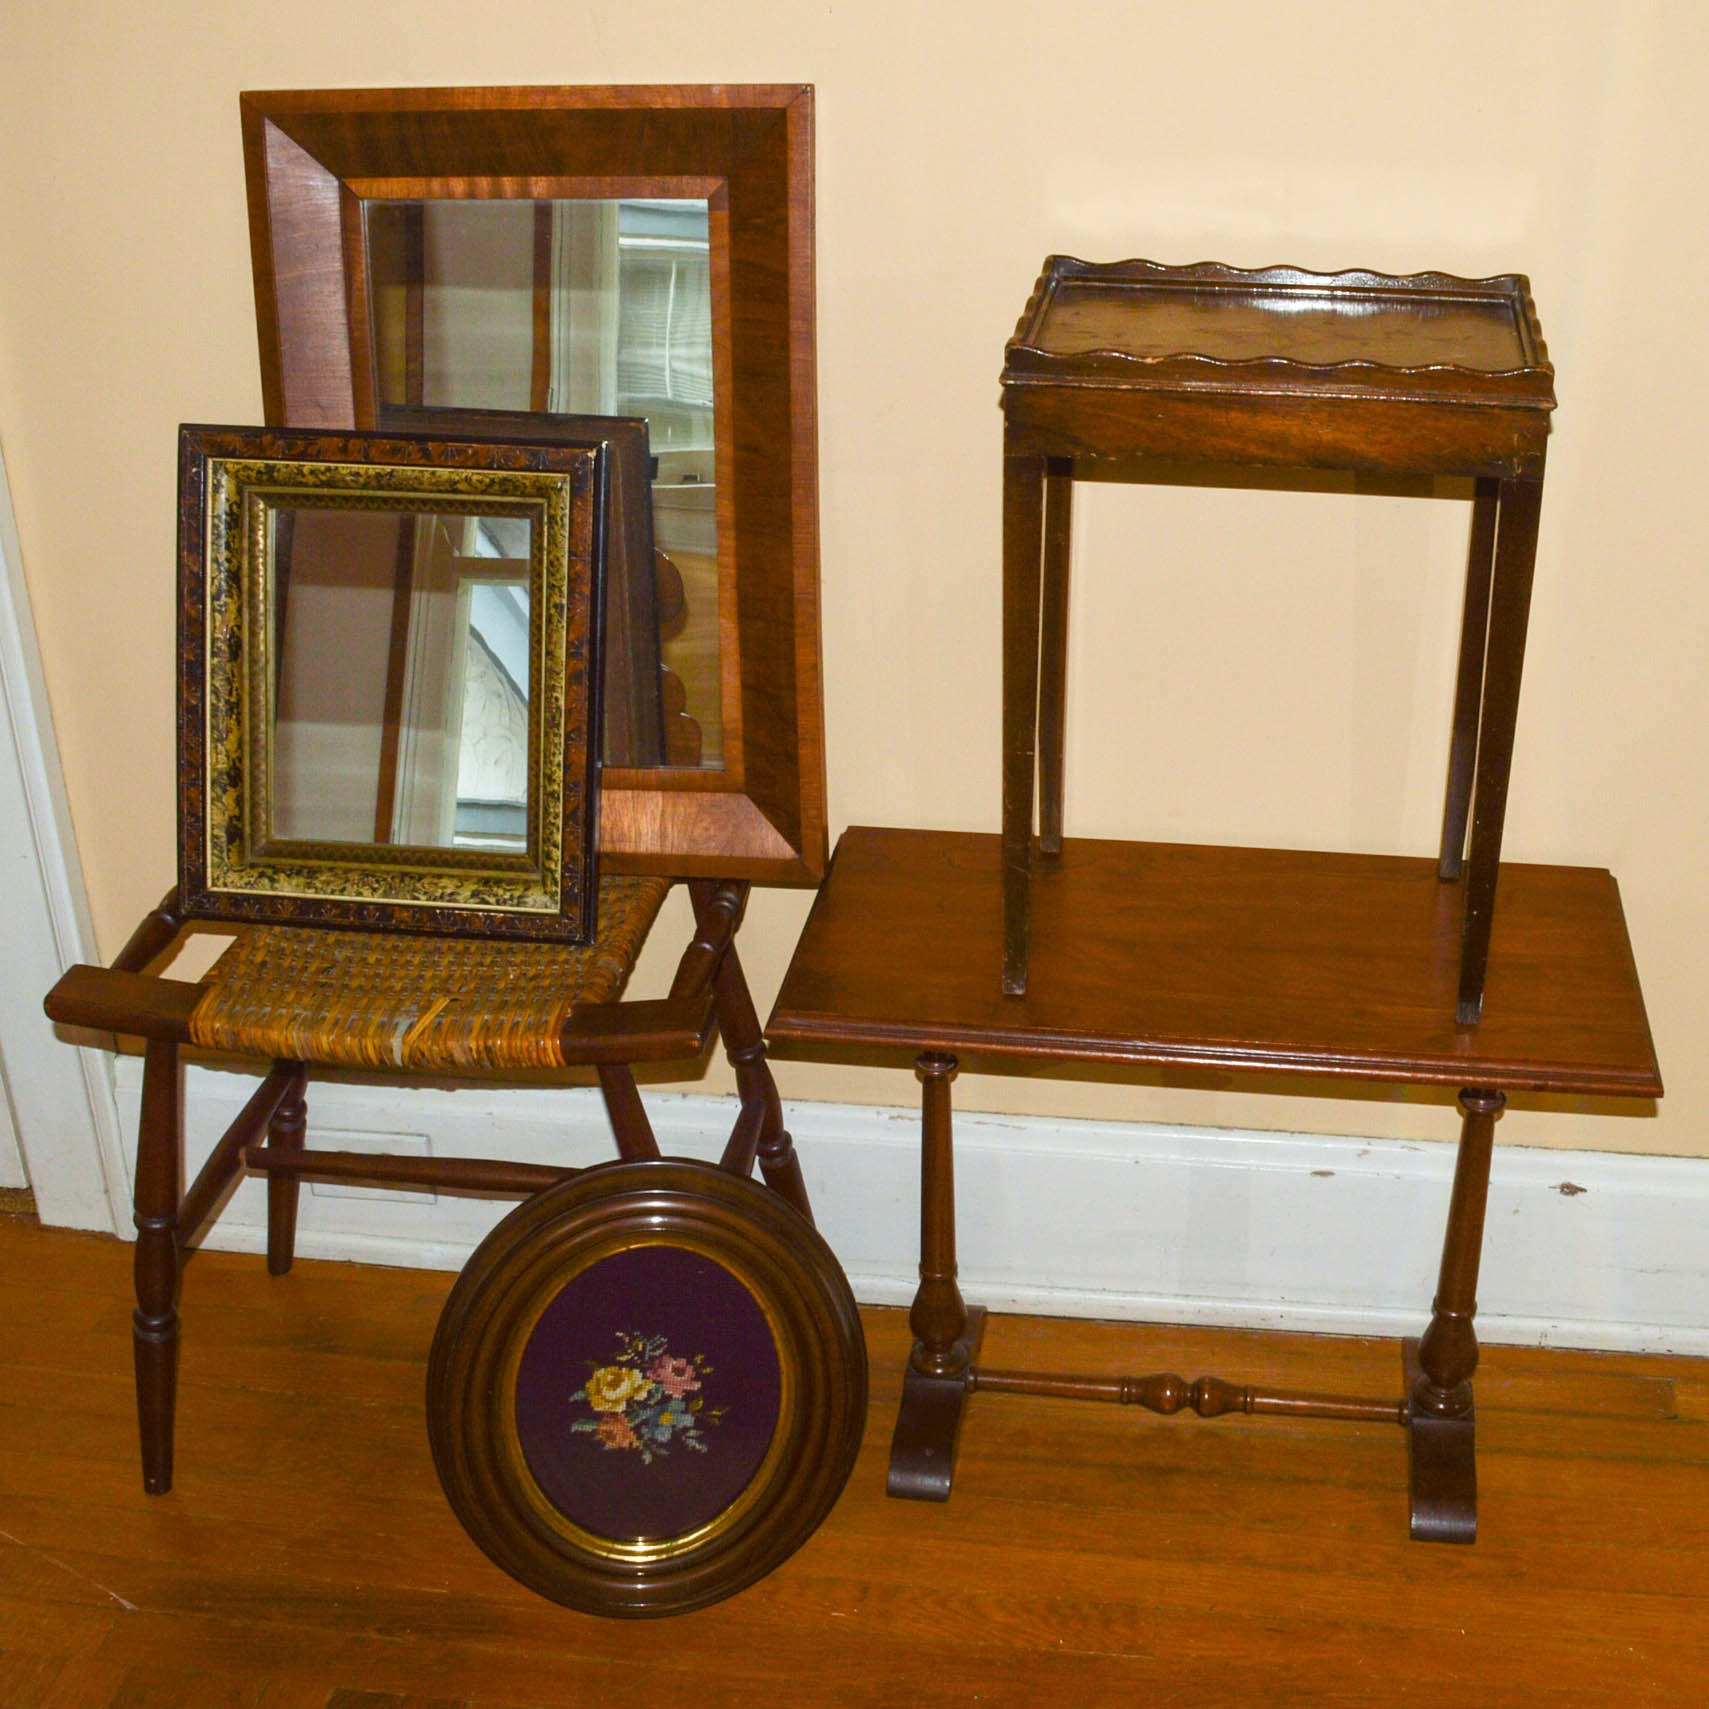 Wooden Side Tables, Mirrors, Framed Needlework, and Woven Stool